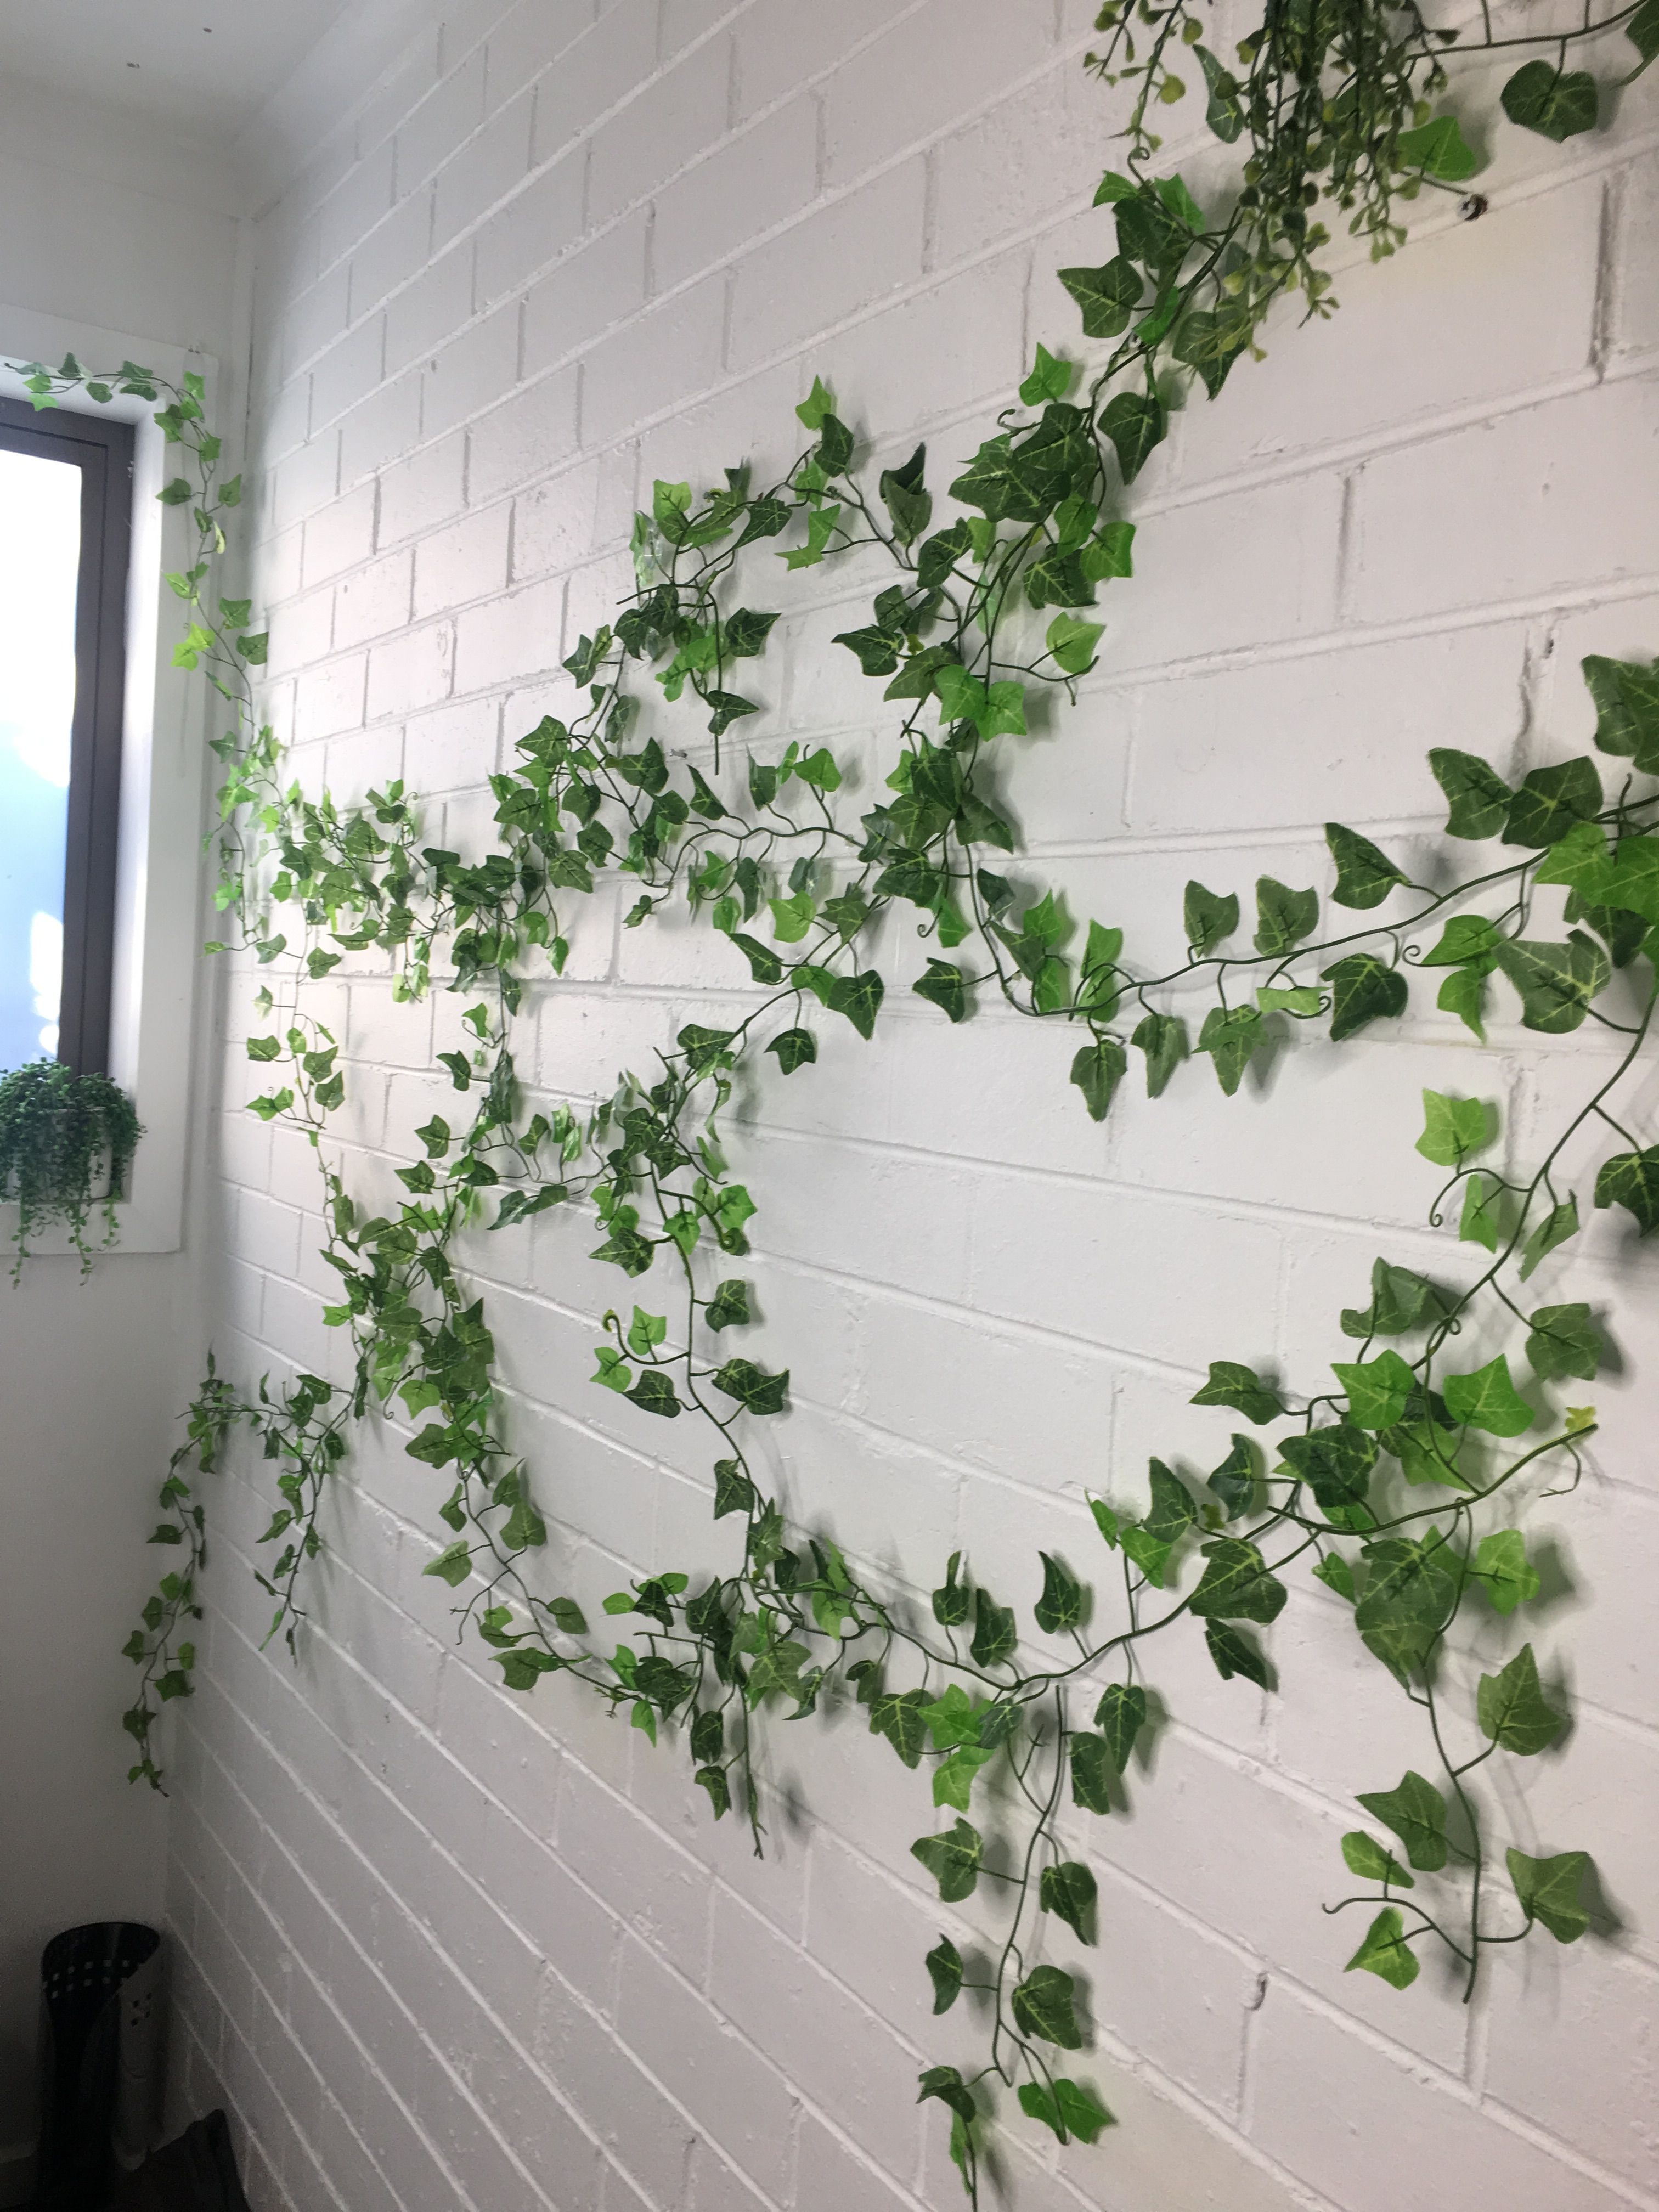 Best Kitchen Gallery: Ivy Wall On Bricks Indoor Ivy Wall Greenwall Cars And Mads of Tropical Ivy House Plants on rachelxblog.com